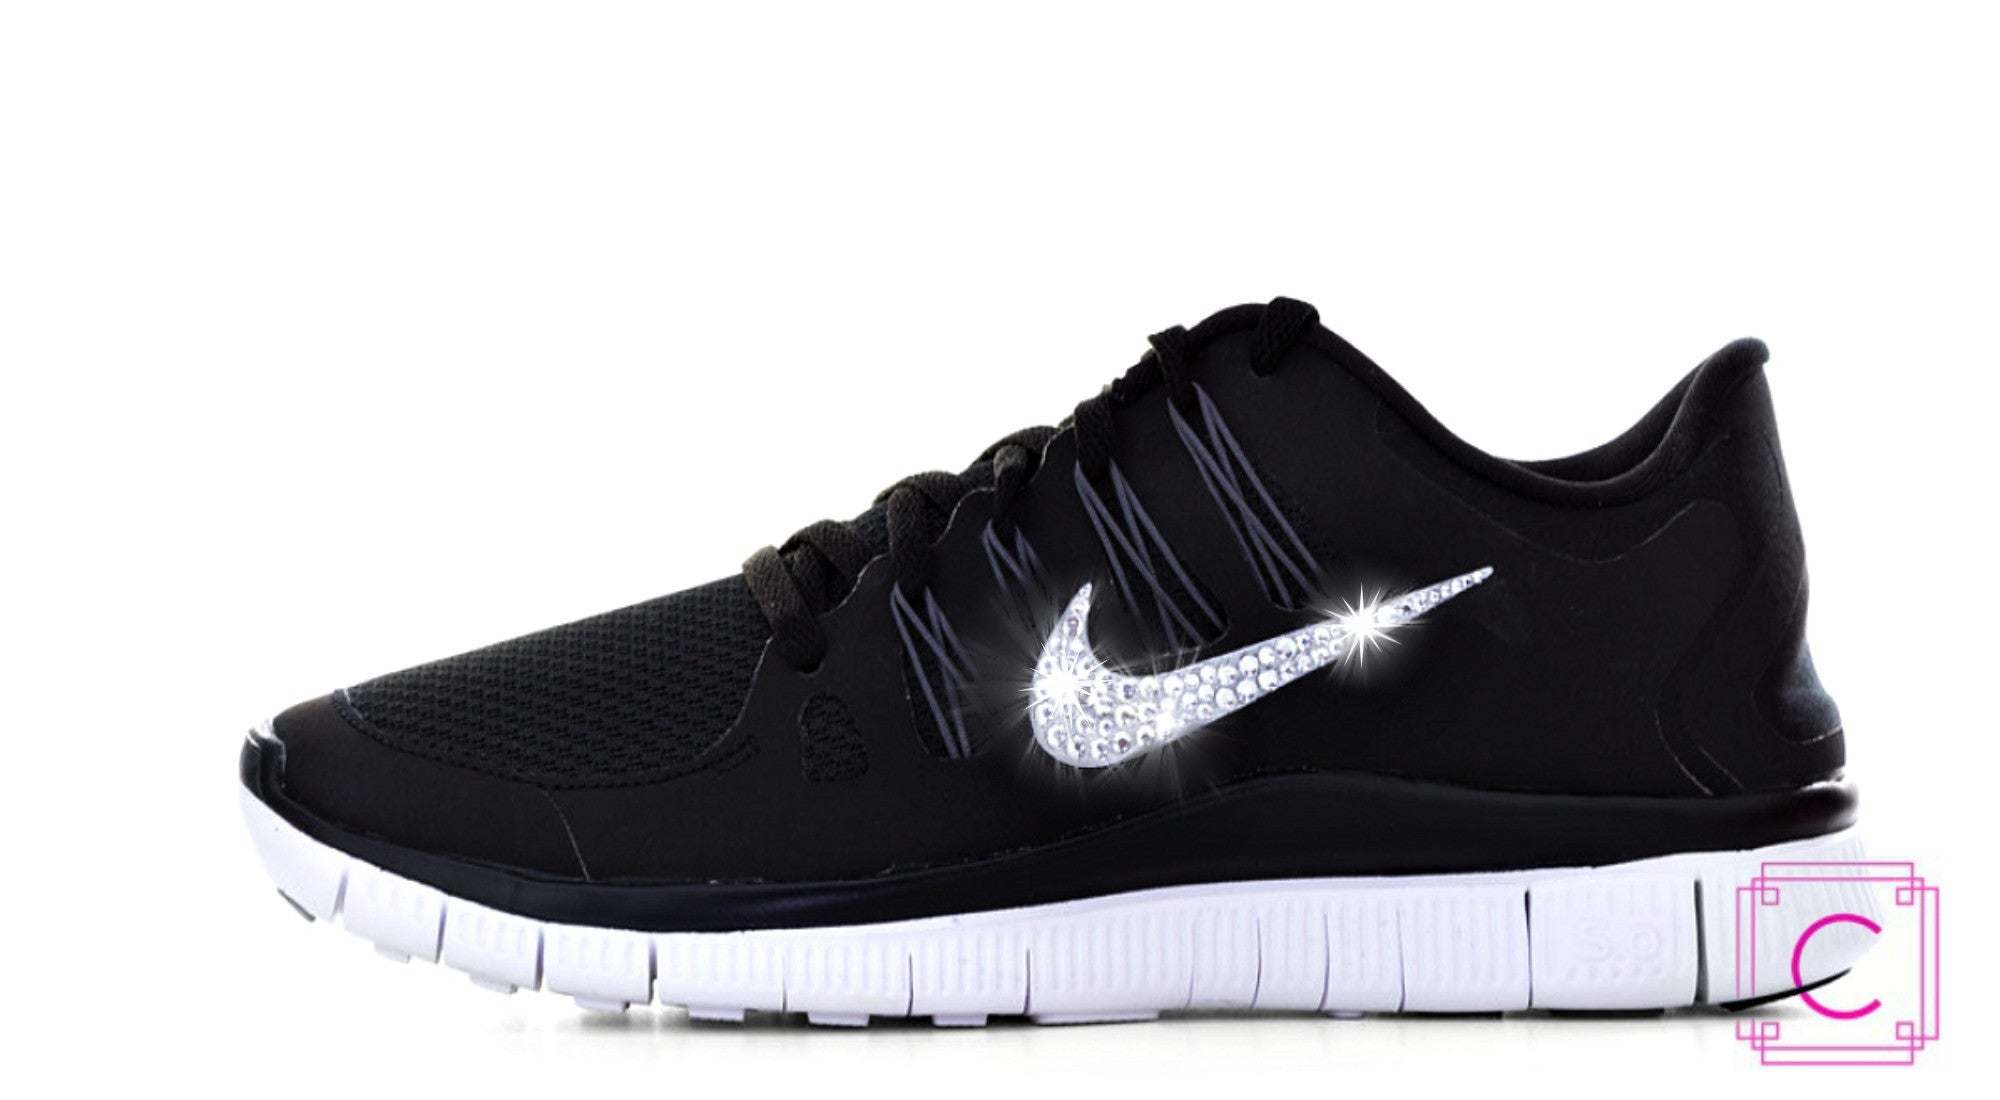 official photos 9ff7f 26585 Women s Nike Free Run 5.0 in Black with SWAROVSKI Crystal Details